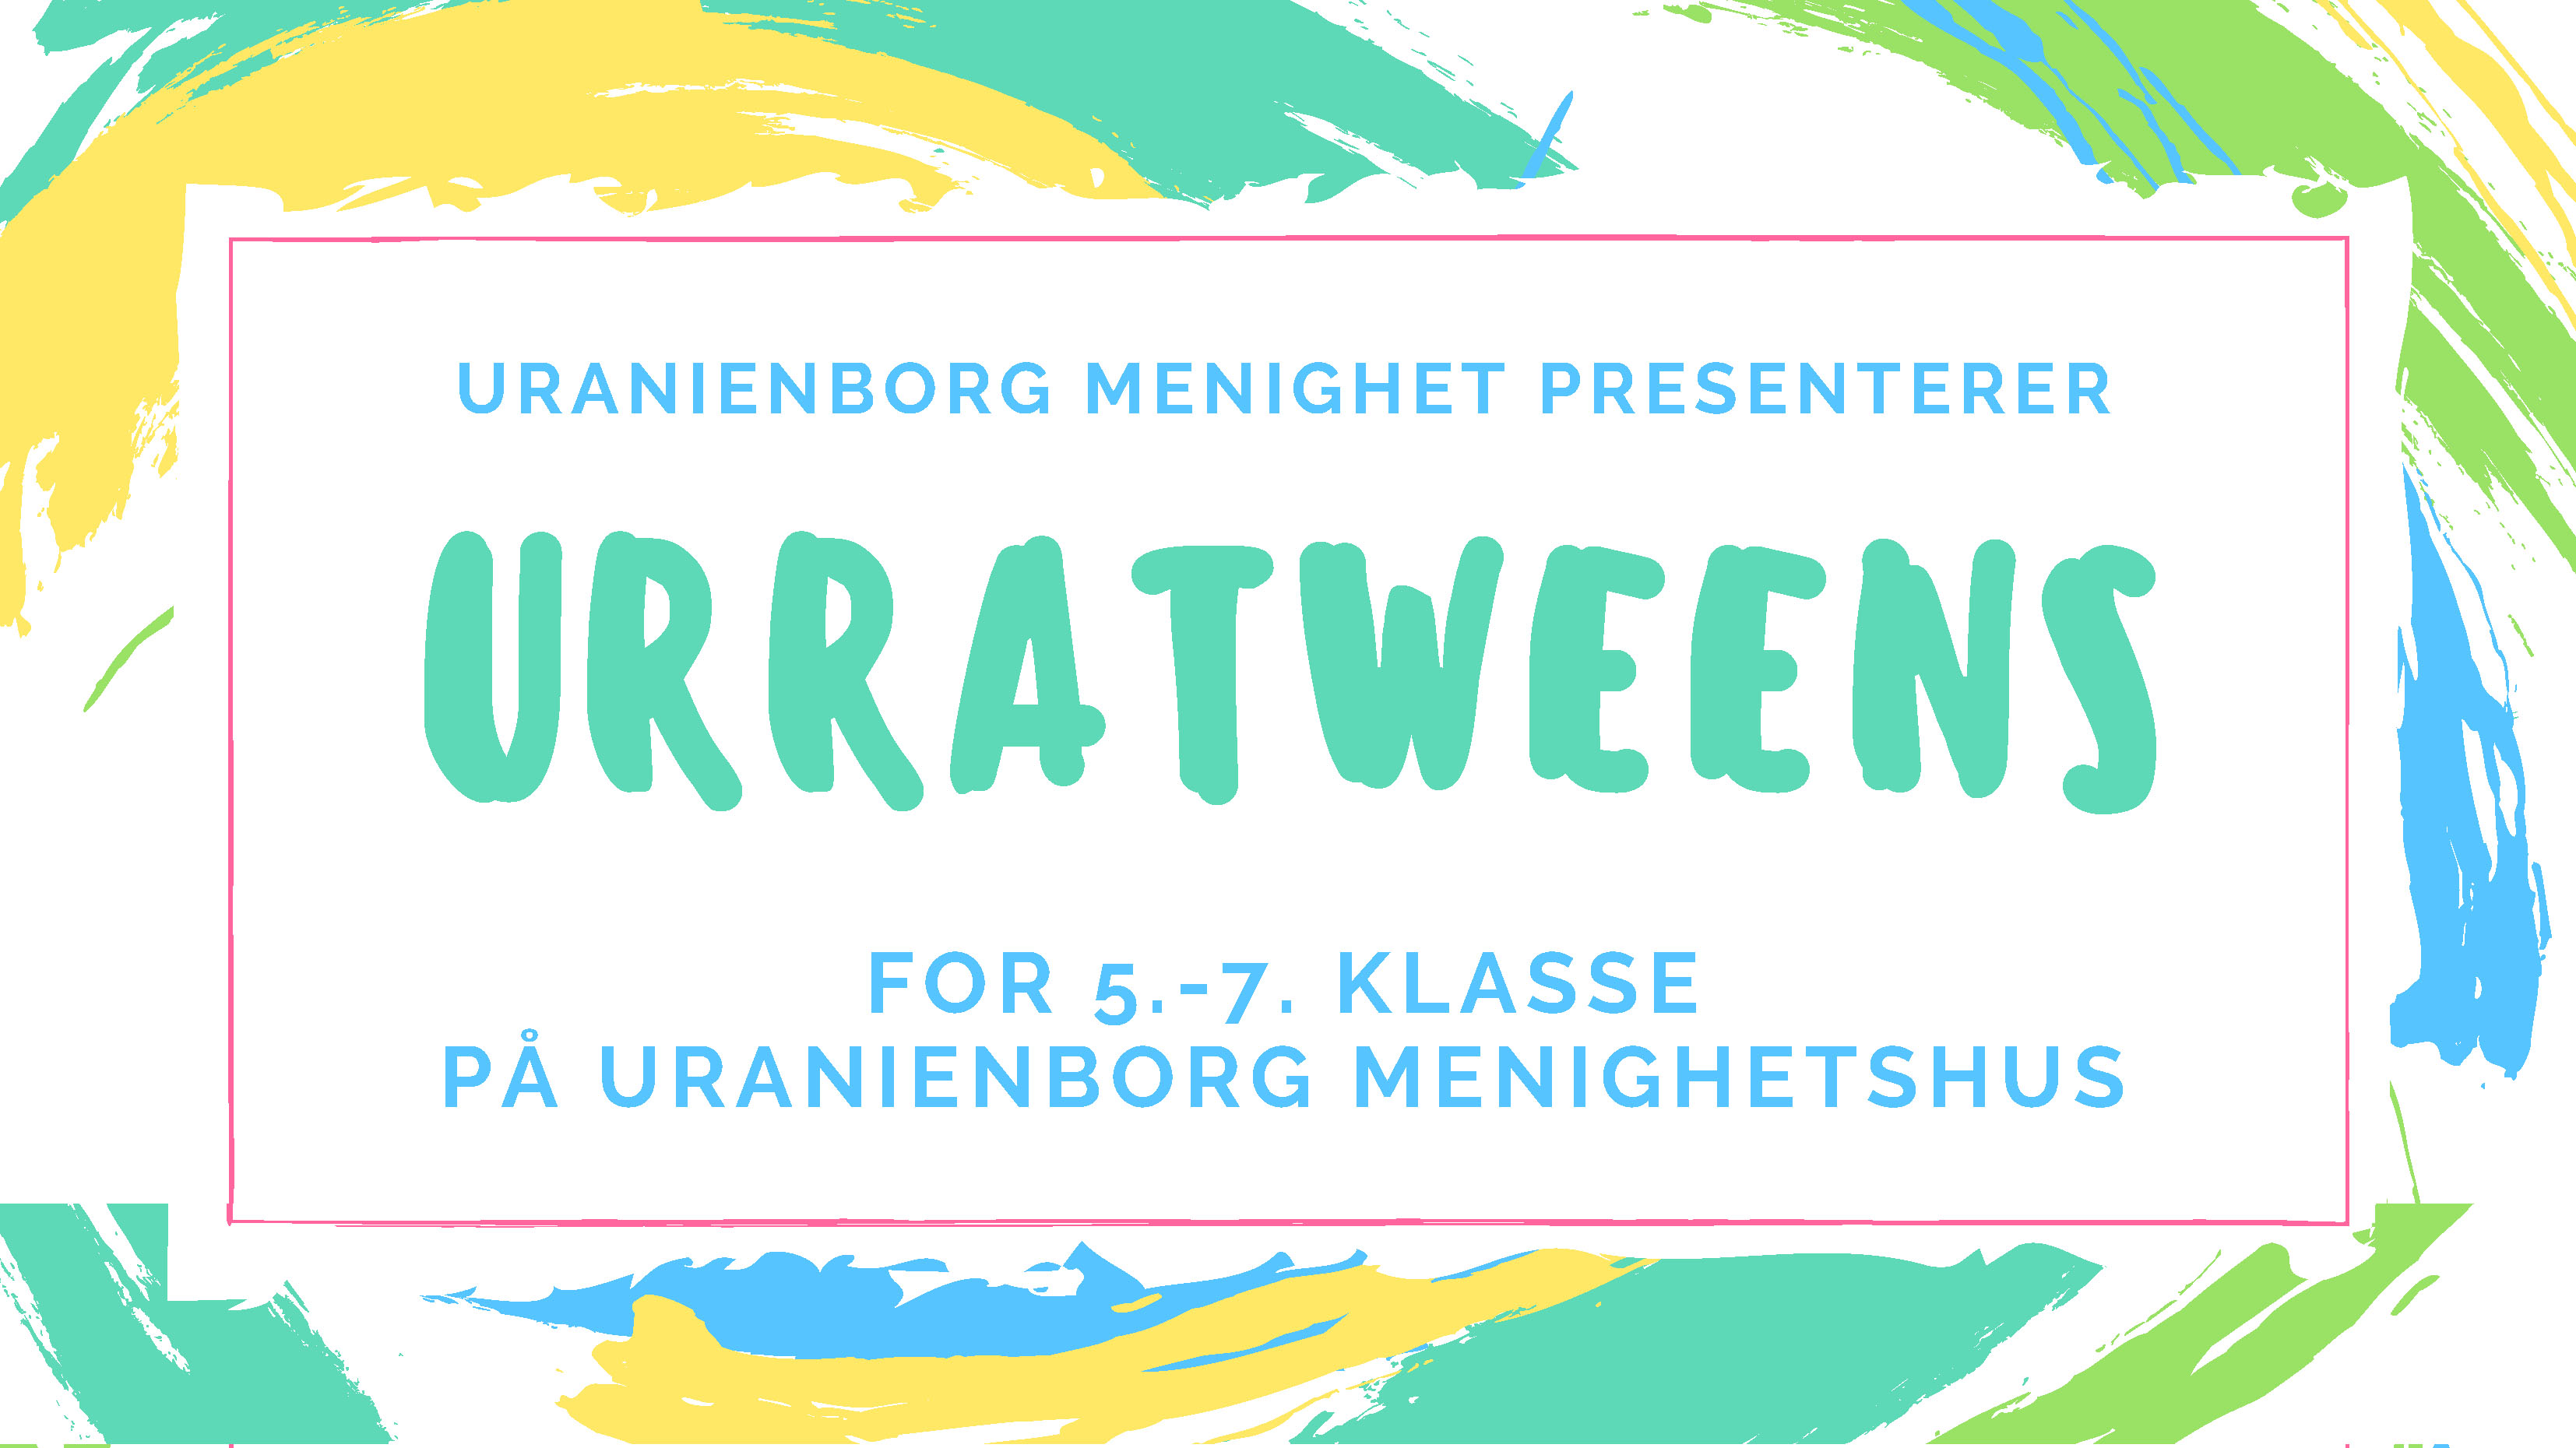 UrraTweens for 5.-7. klasse